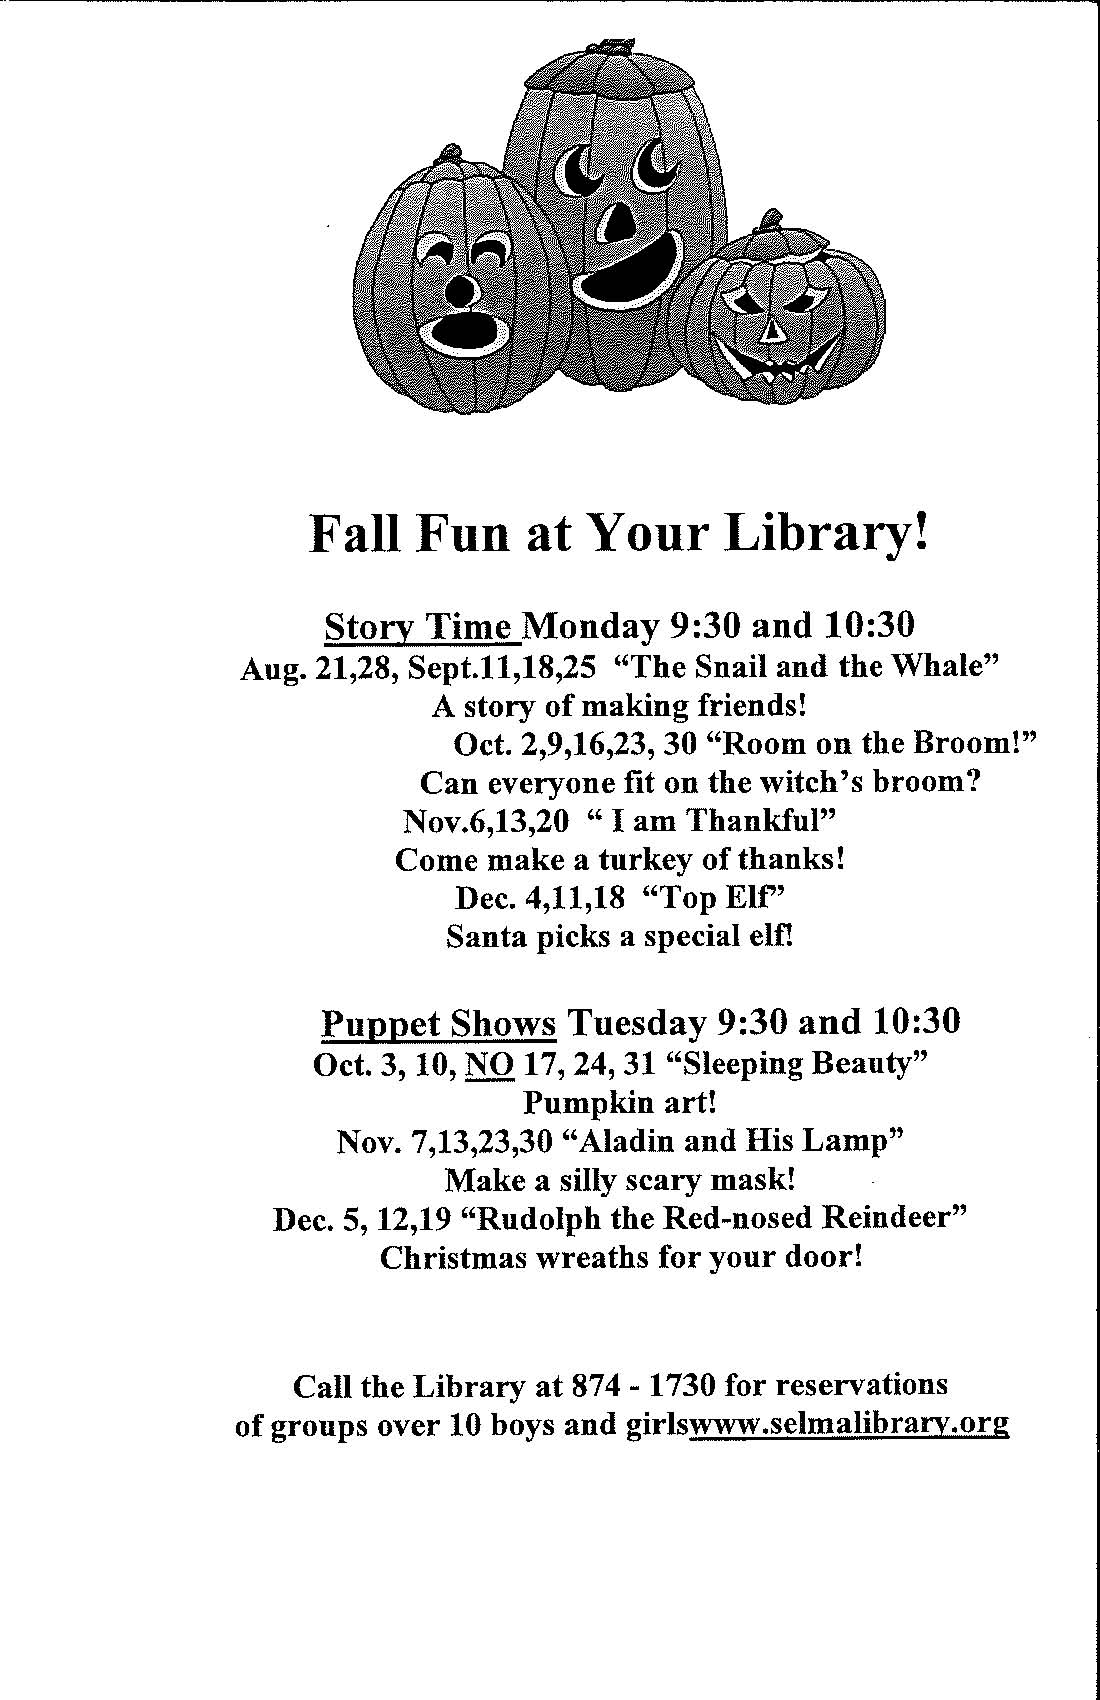 Fall Fun at your Library